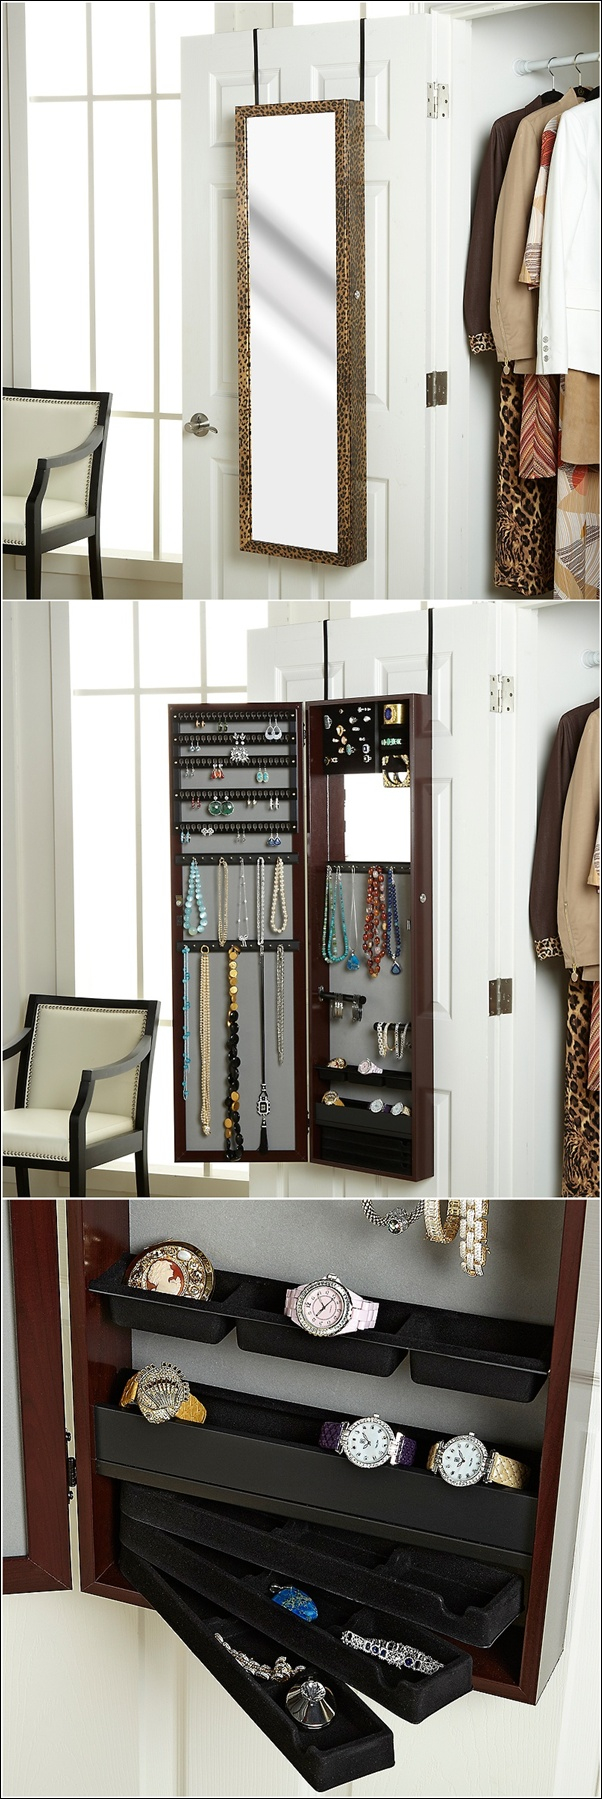 Seriously Where Can I Find This Organization